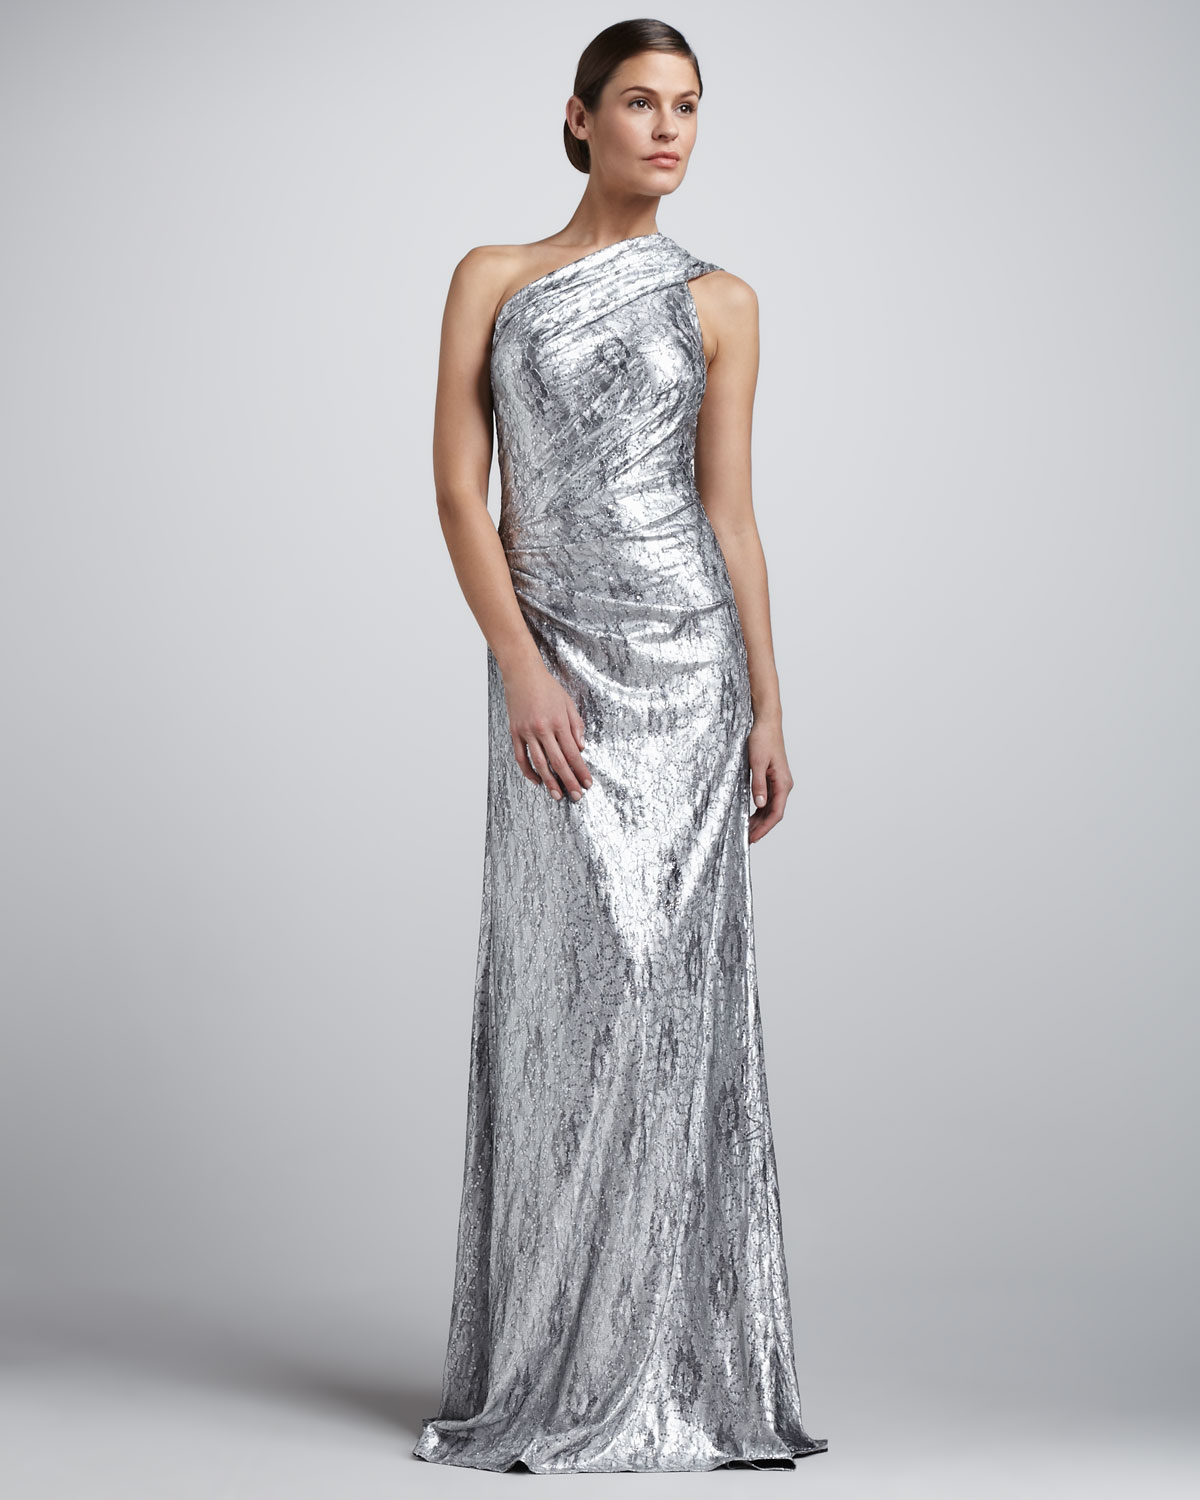 Metallic wedding guest dresses silver one shoulder for Neiman marcus wedding guest dresses